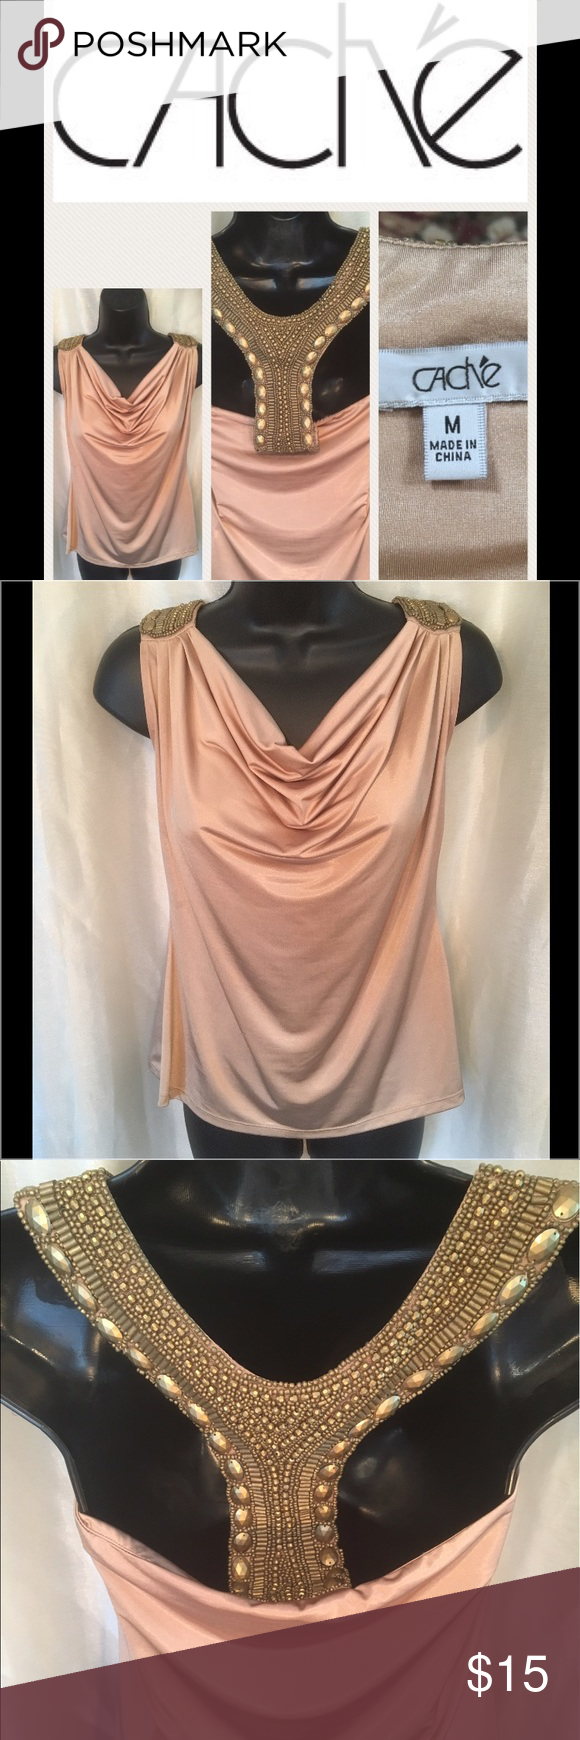 Caché💍 Tan Shimmer Heavy Intricate Beaded Top Caché Tan Shimmer HEAVY beaded intricate top. SIZE M - I'm always open for a good offer, don't hesitate to ask if it's reasonable. My prices can change daily so grab your favorite items while they last. Please if you are unsure about the size, I will measure and get back to you ASAP. I would like to avoid low ratings because of potential sizing issues, when I will gladly measure for you 😀 If you have any questions let me know. Happy Shopping 😊…